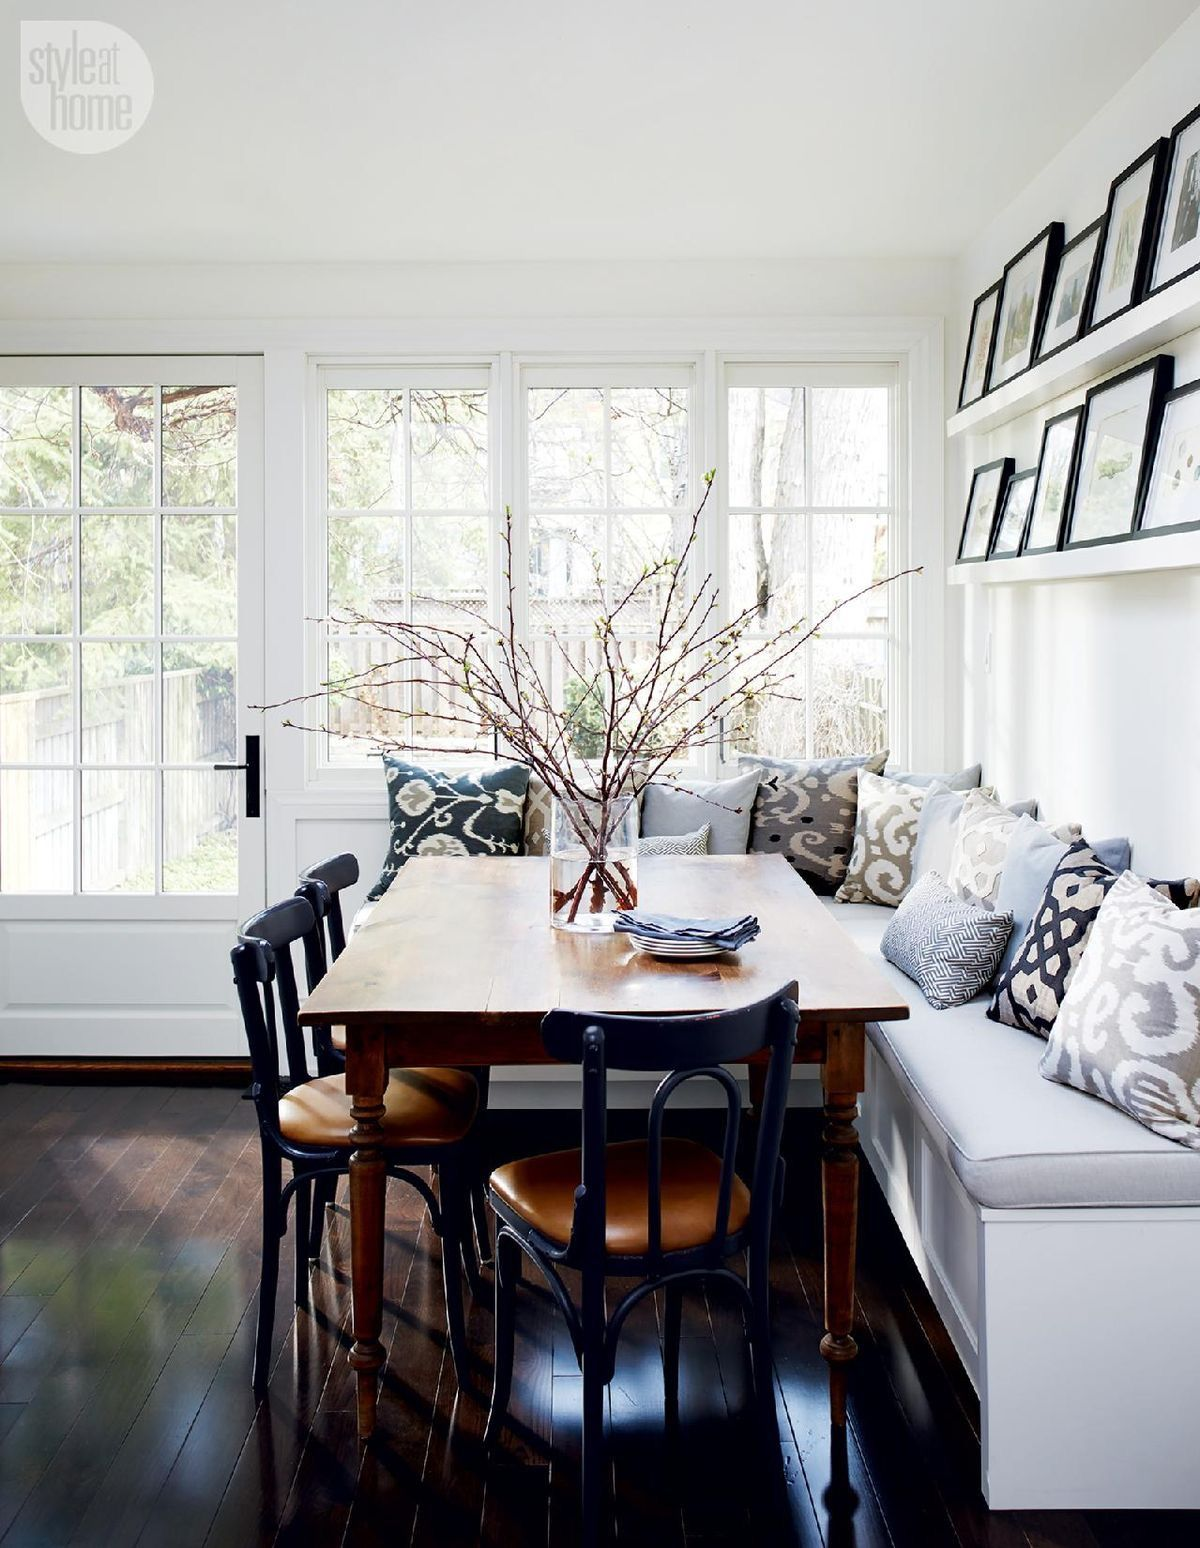 Dining Room With Banquette Seating Simple Change Table And Chairs  Home Decor  Pinterest  Change Tables Inspiration